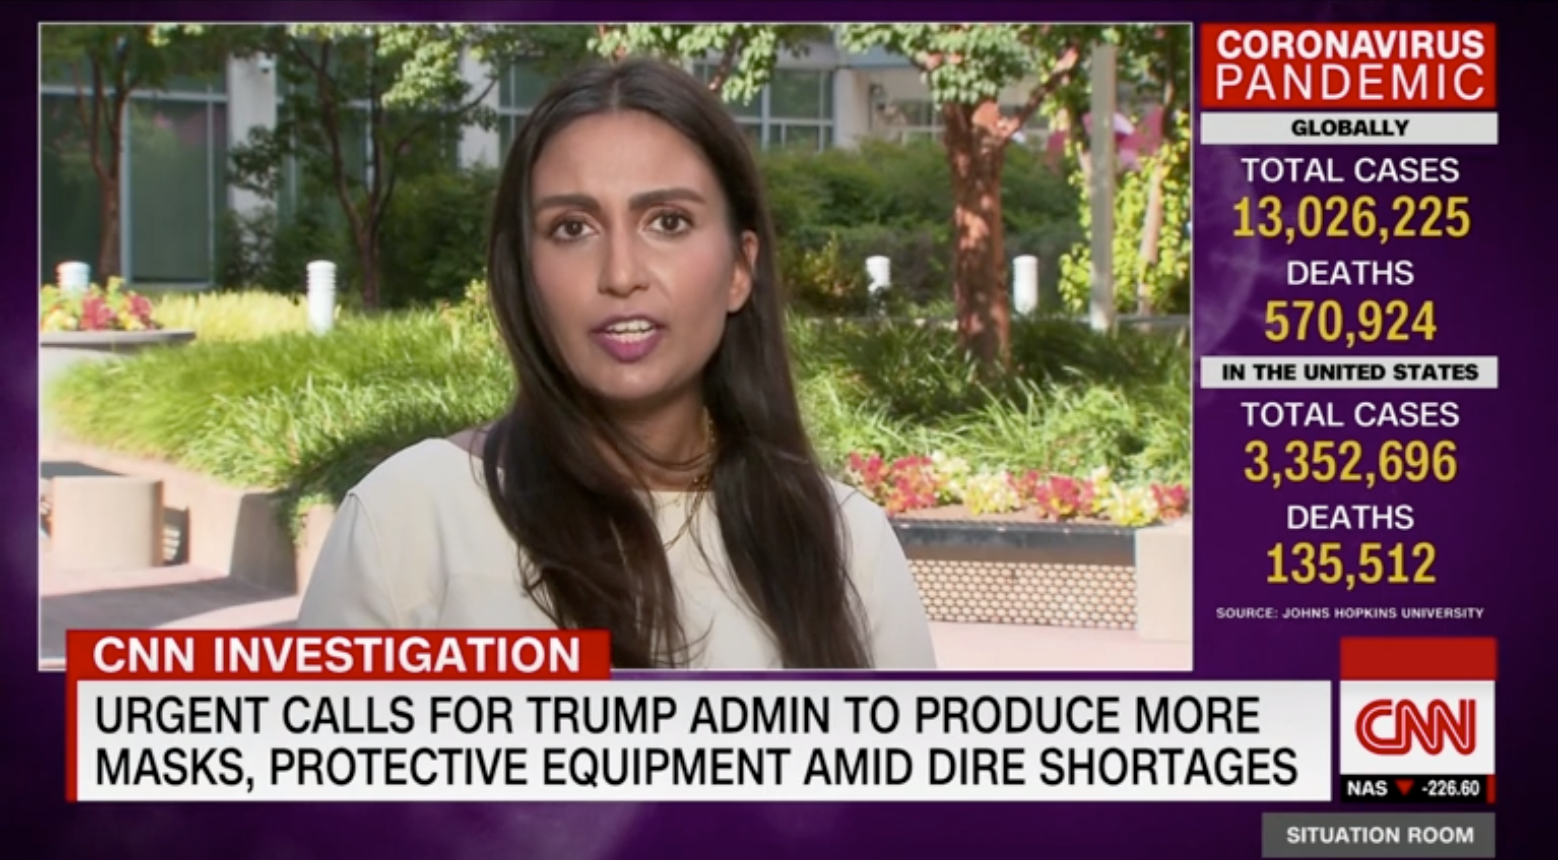 Dr. Shikha Gupta appears on CNN to discuss the dire need for more production of personal protective equipment